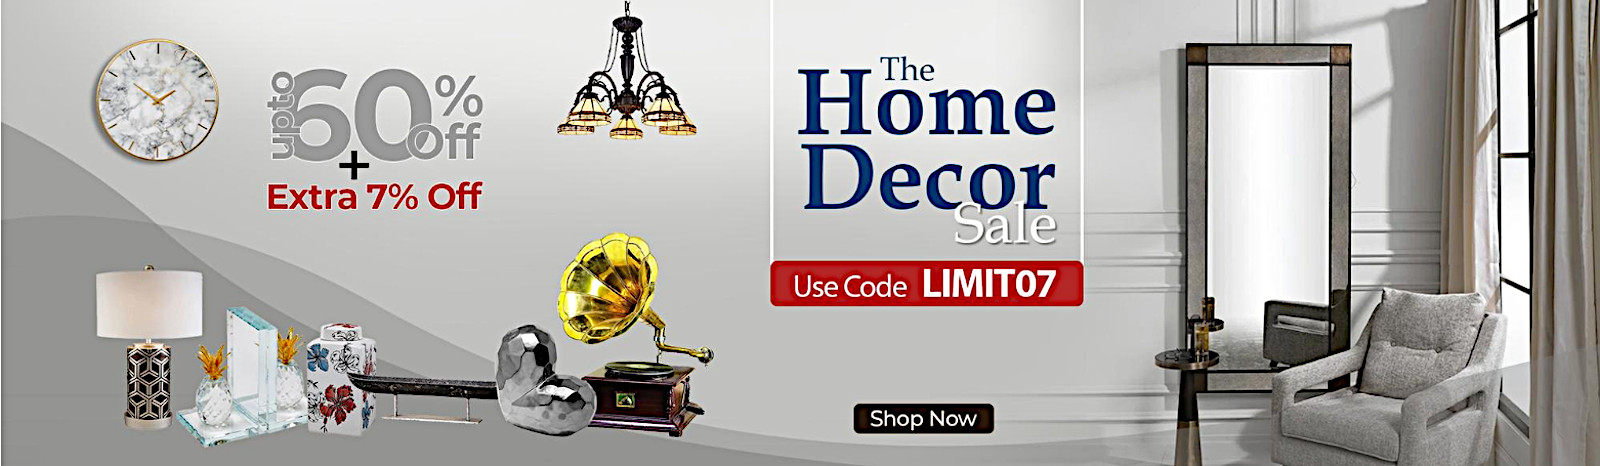 Cost-effective The Home Decor Sale